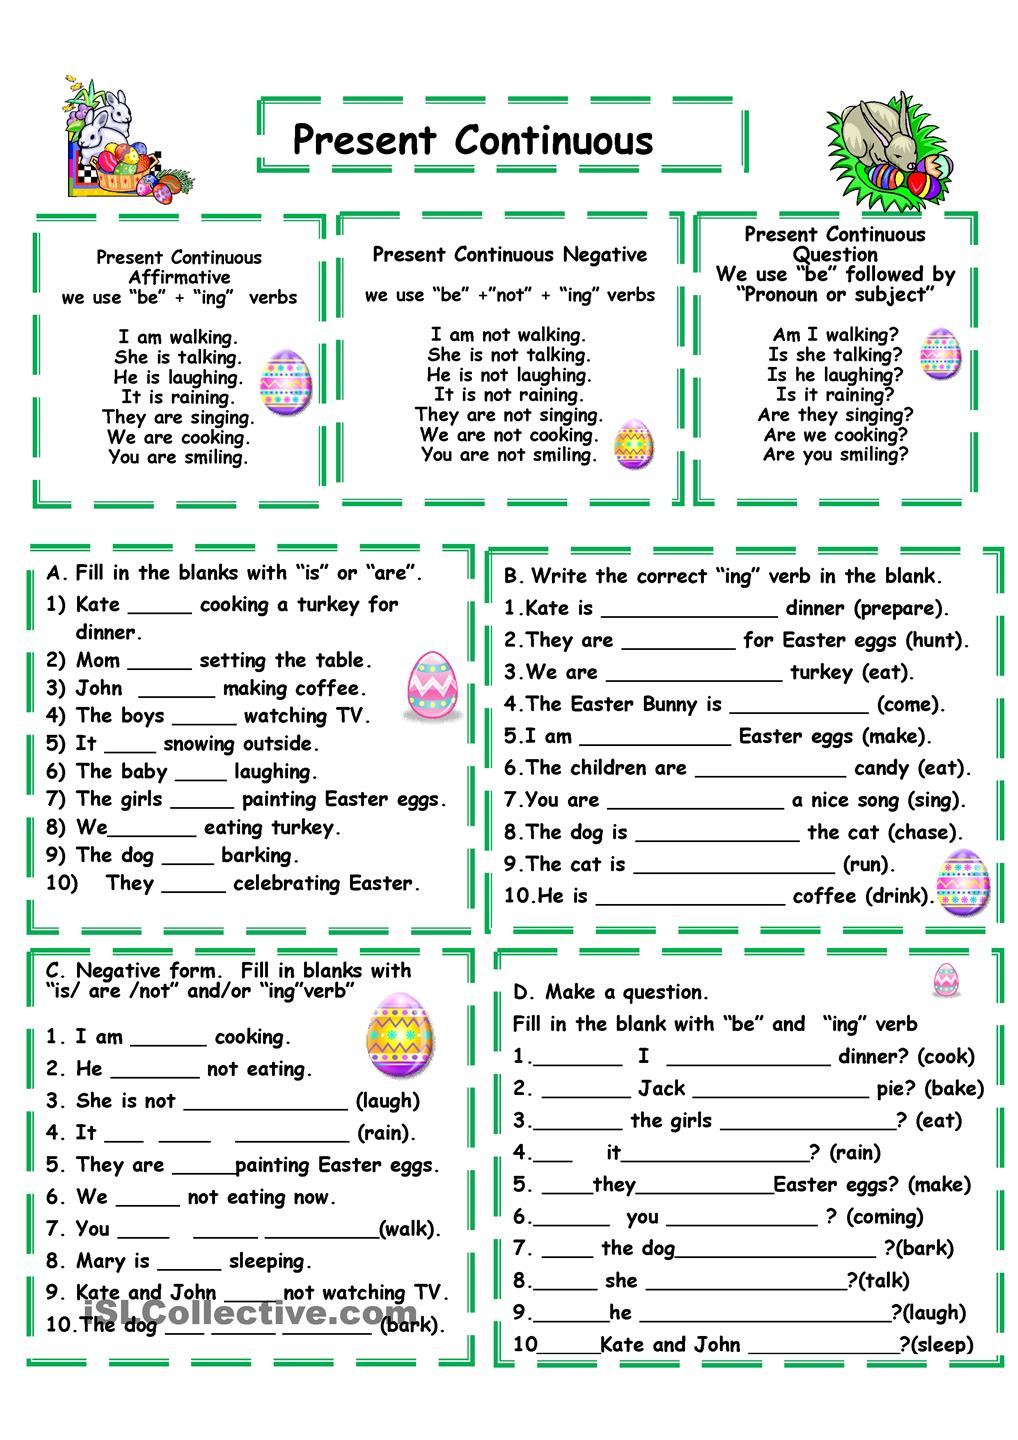 Writing future tense of verb worksheet turtle diary - Worksheets Geometric Shapes Free Download Printable Worksheets On